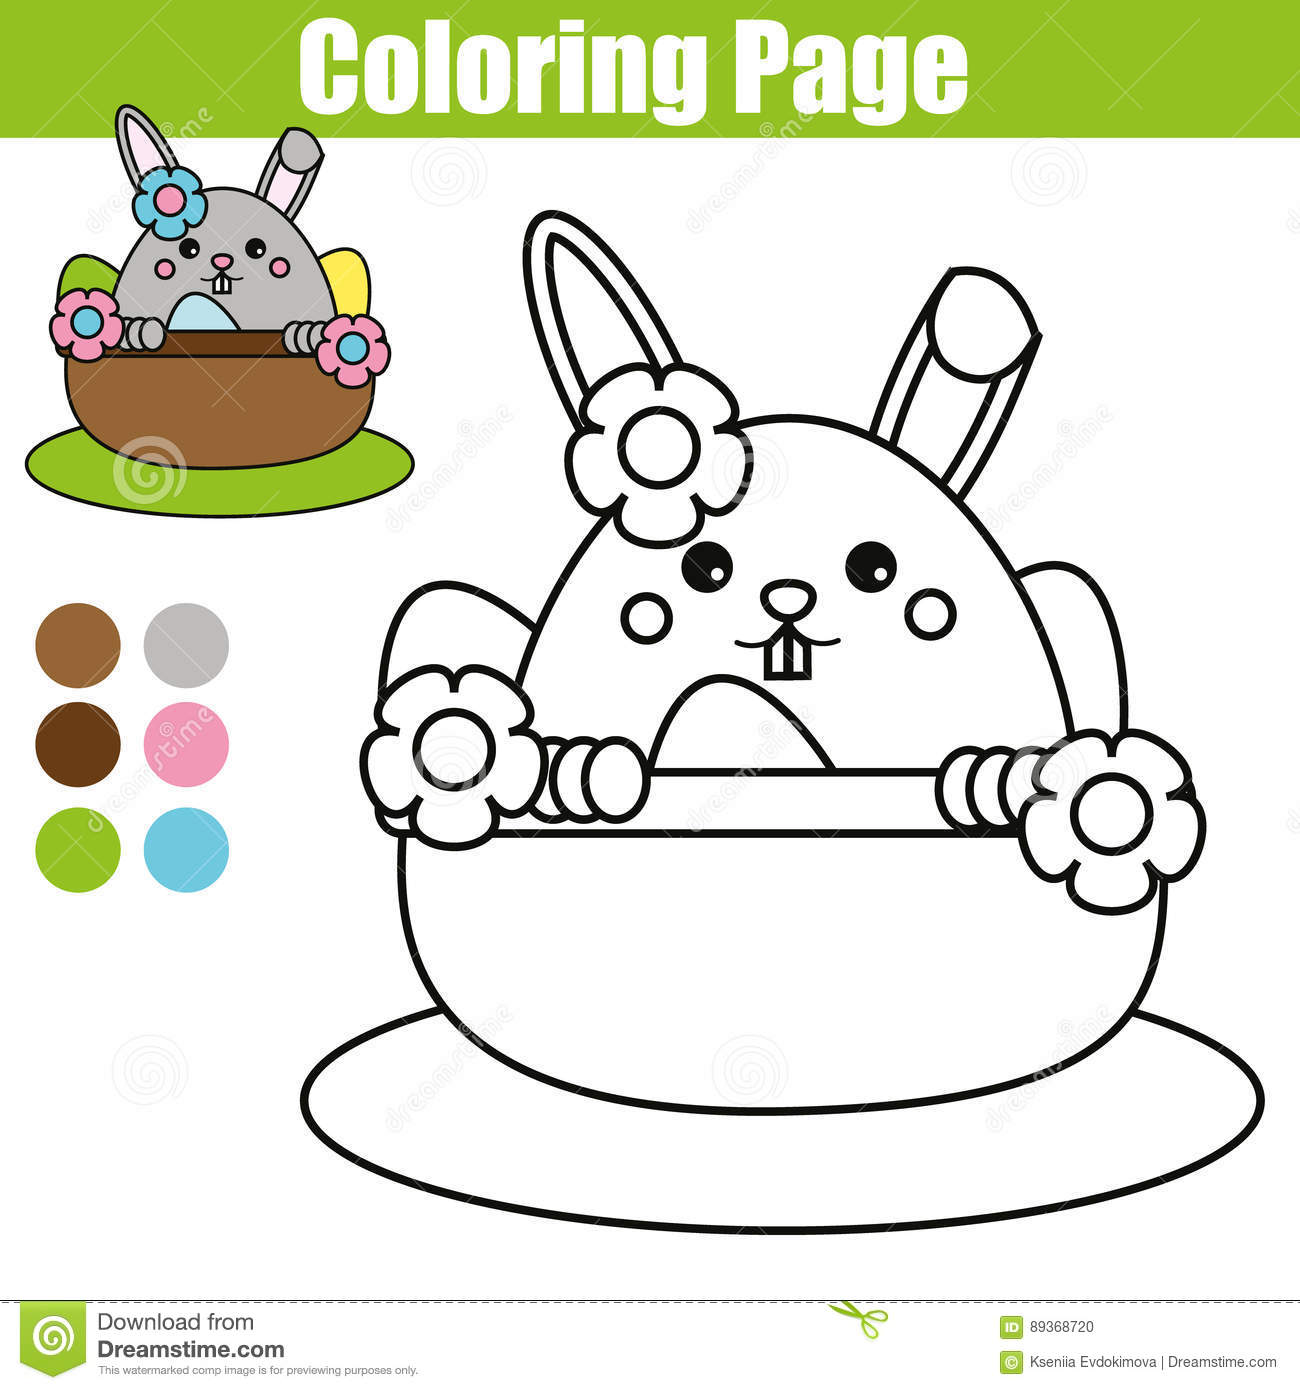 Coloring Page With Easter Bunny Character Printable